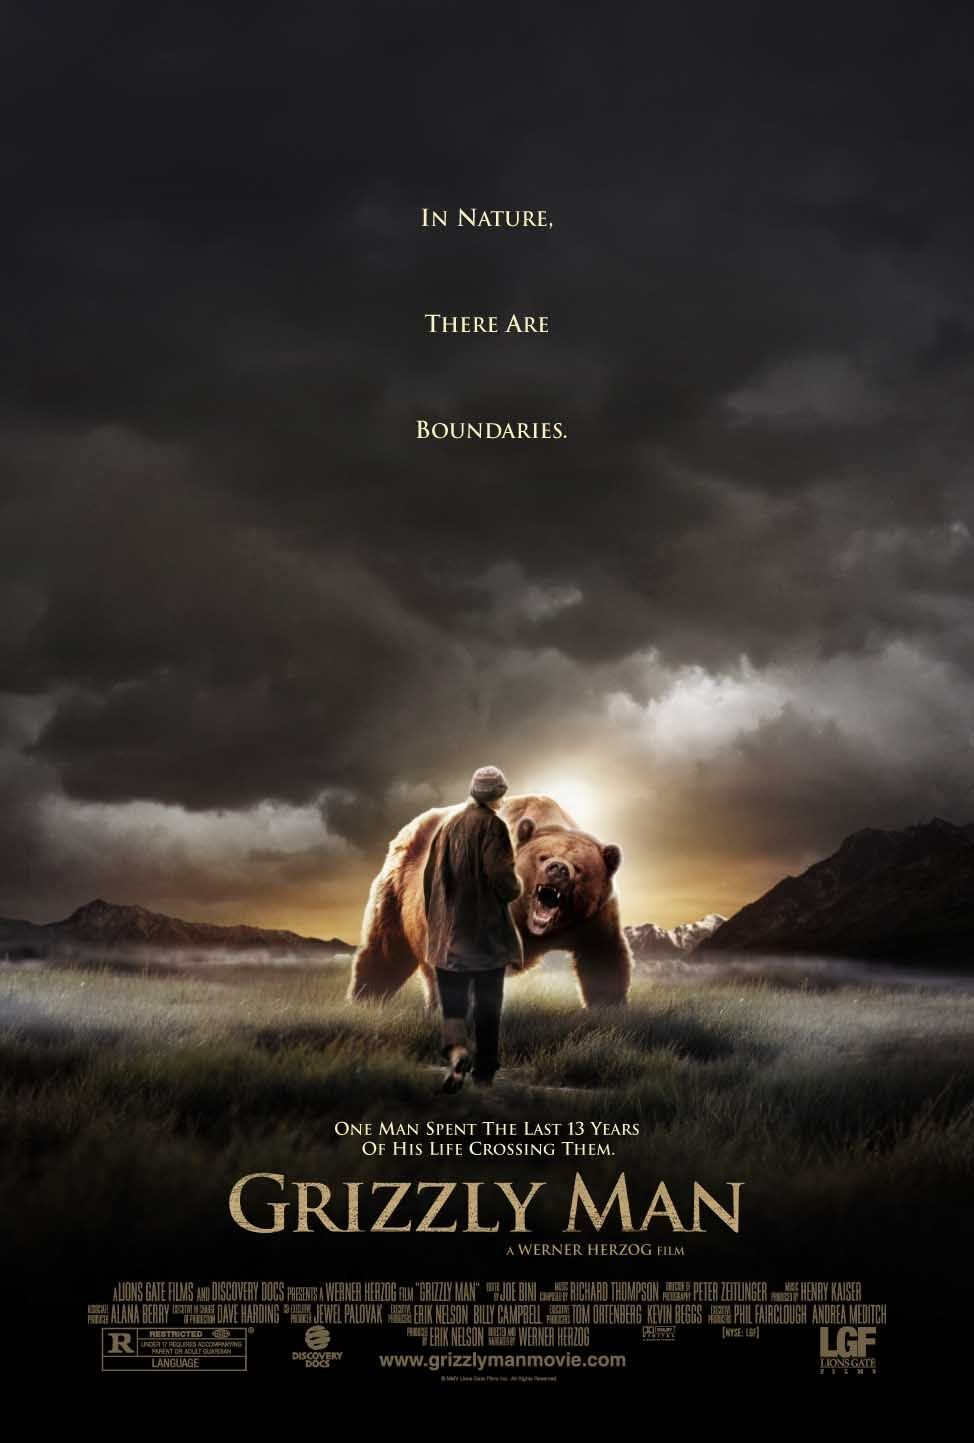 Grizzly Man Google image from http://www.impawards.com/2005/posters/grizzly_man_ver2_xlg.jpg